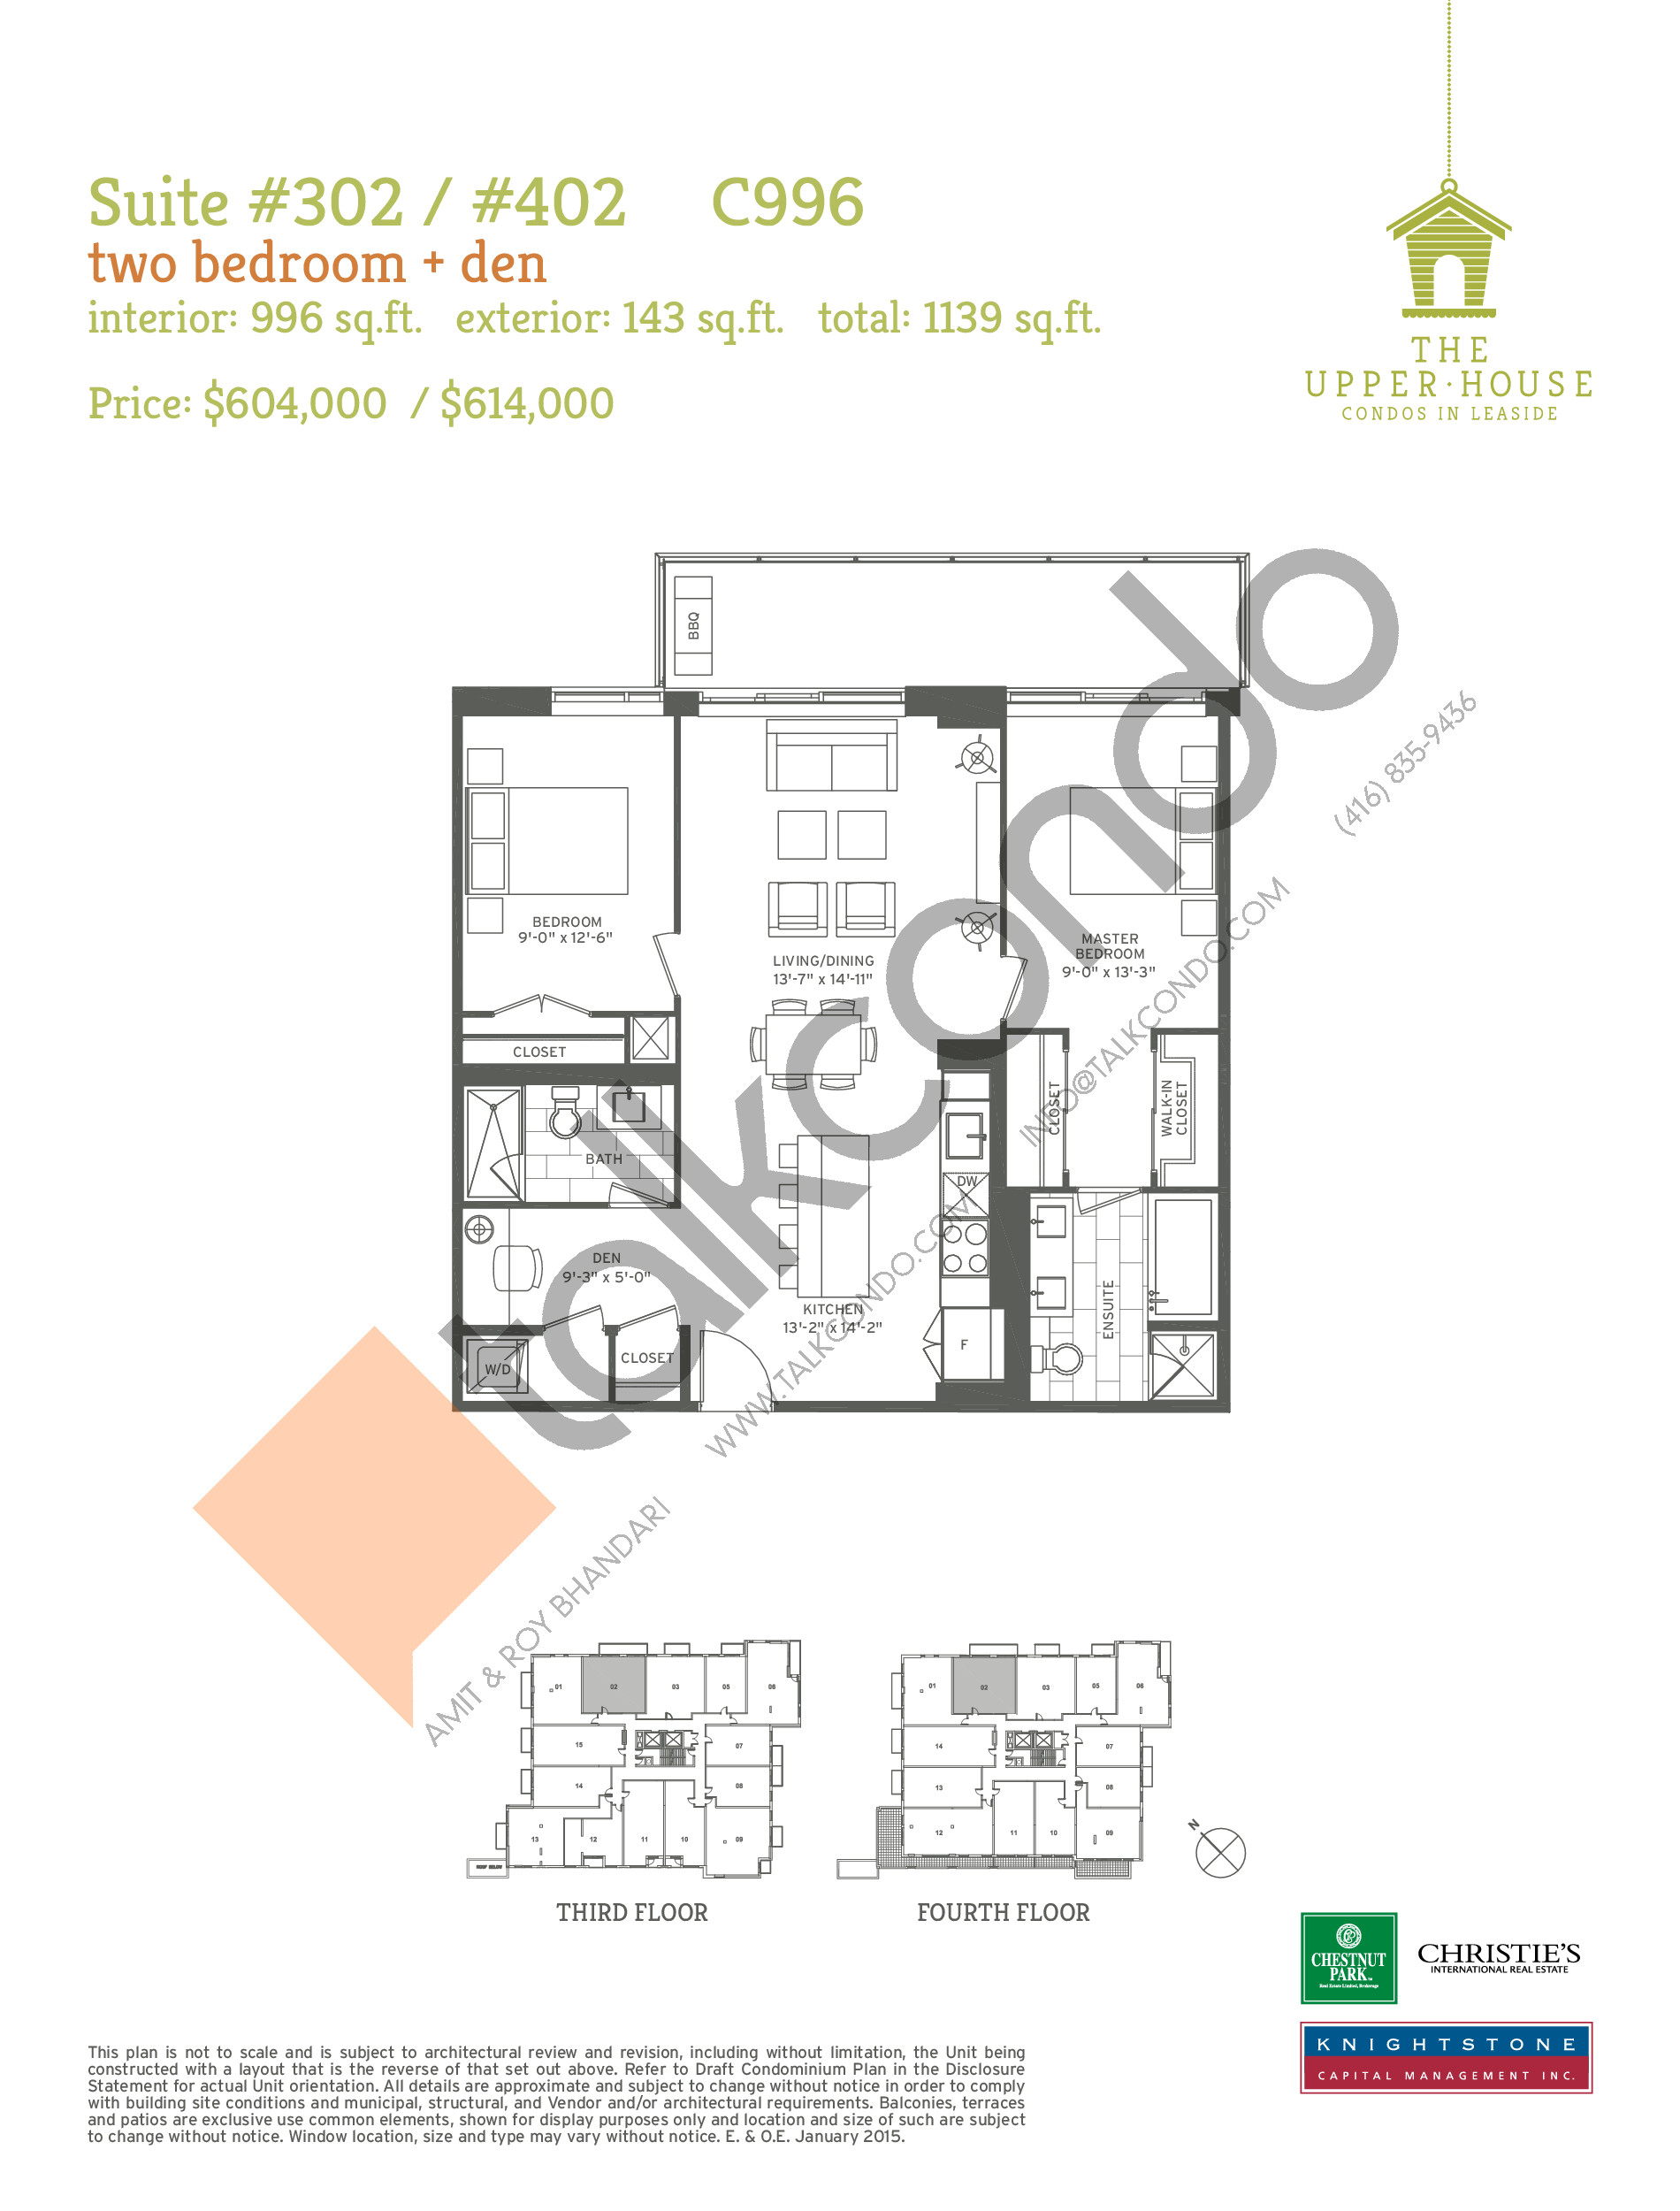 C996 Floor Plan at The Upper House Condos - 996 sq.ft